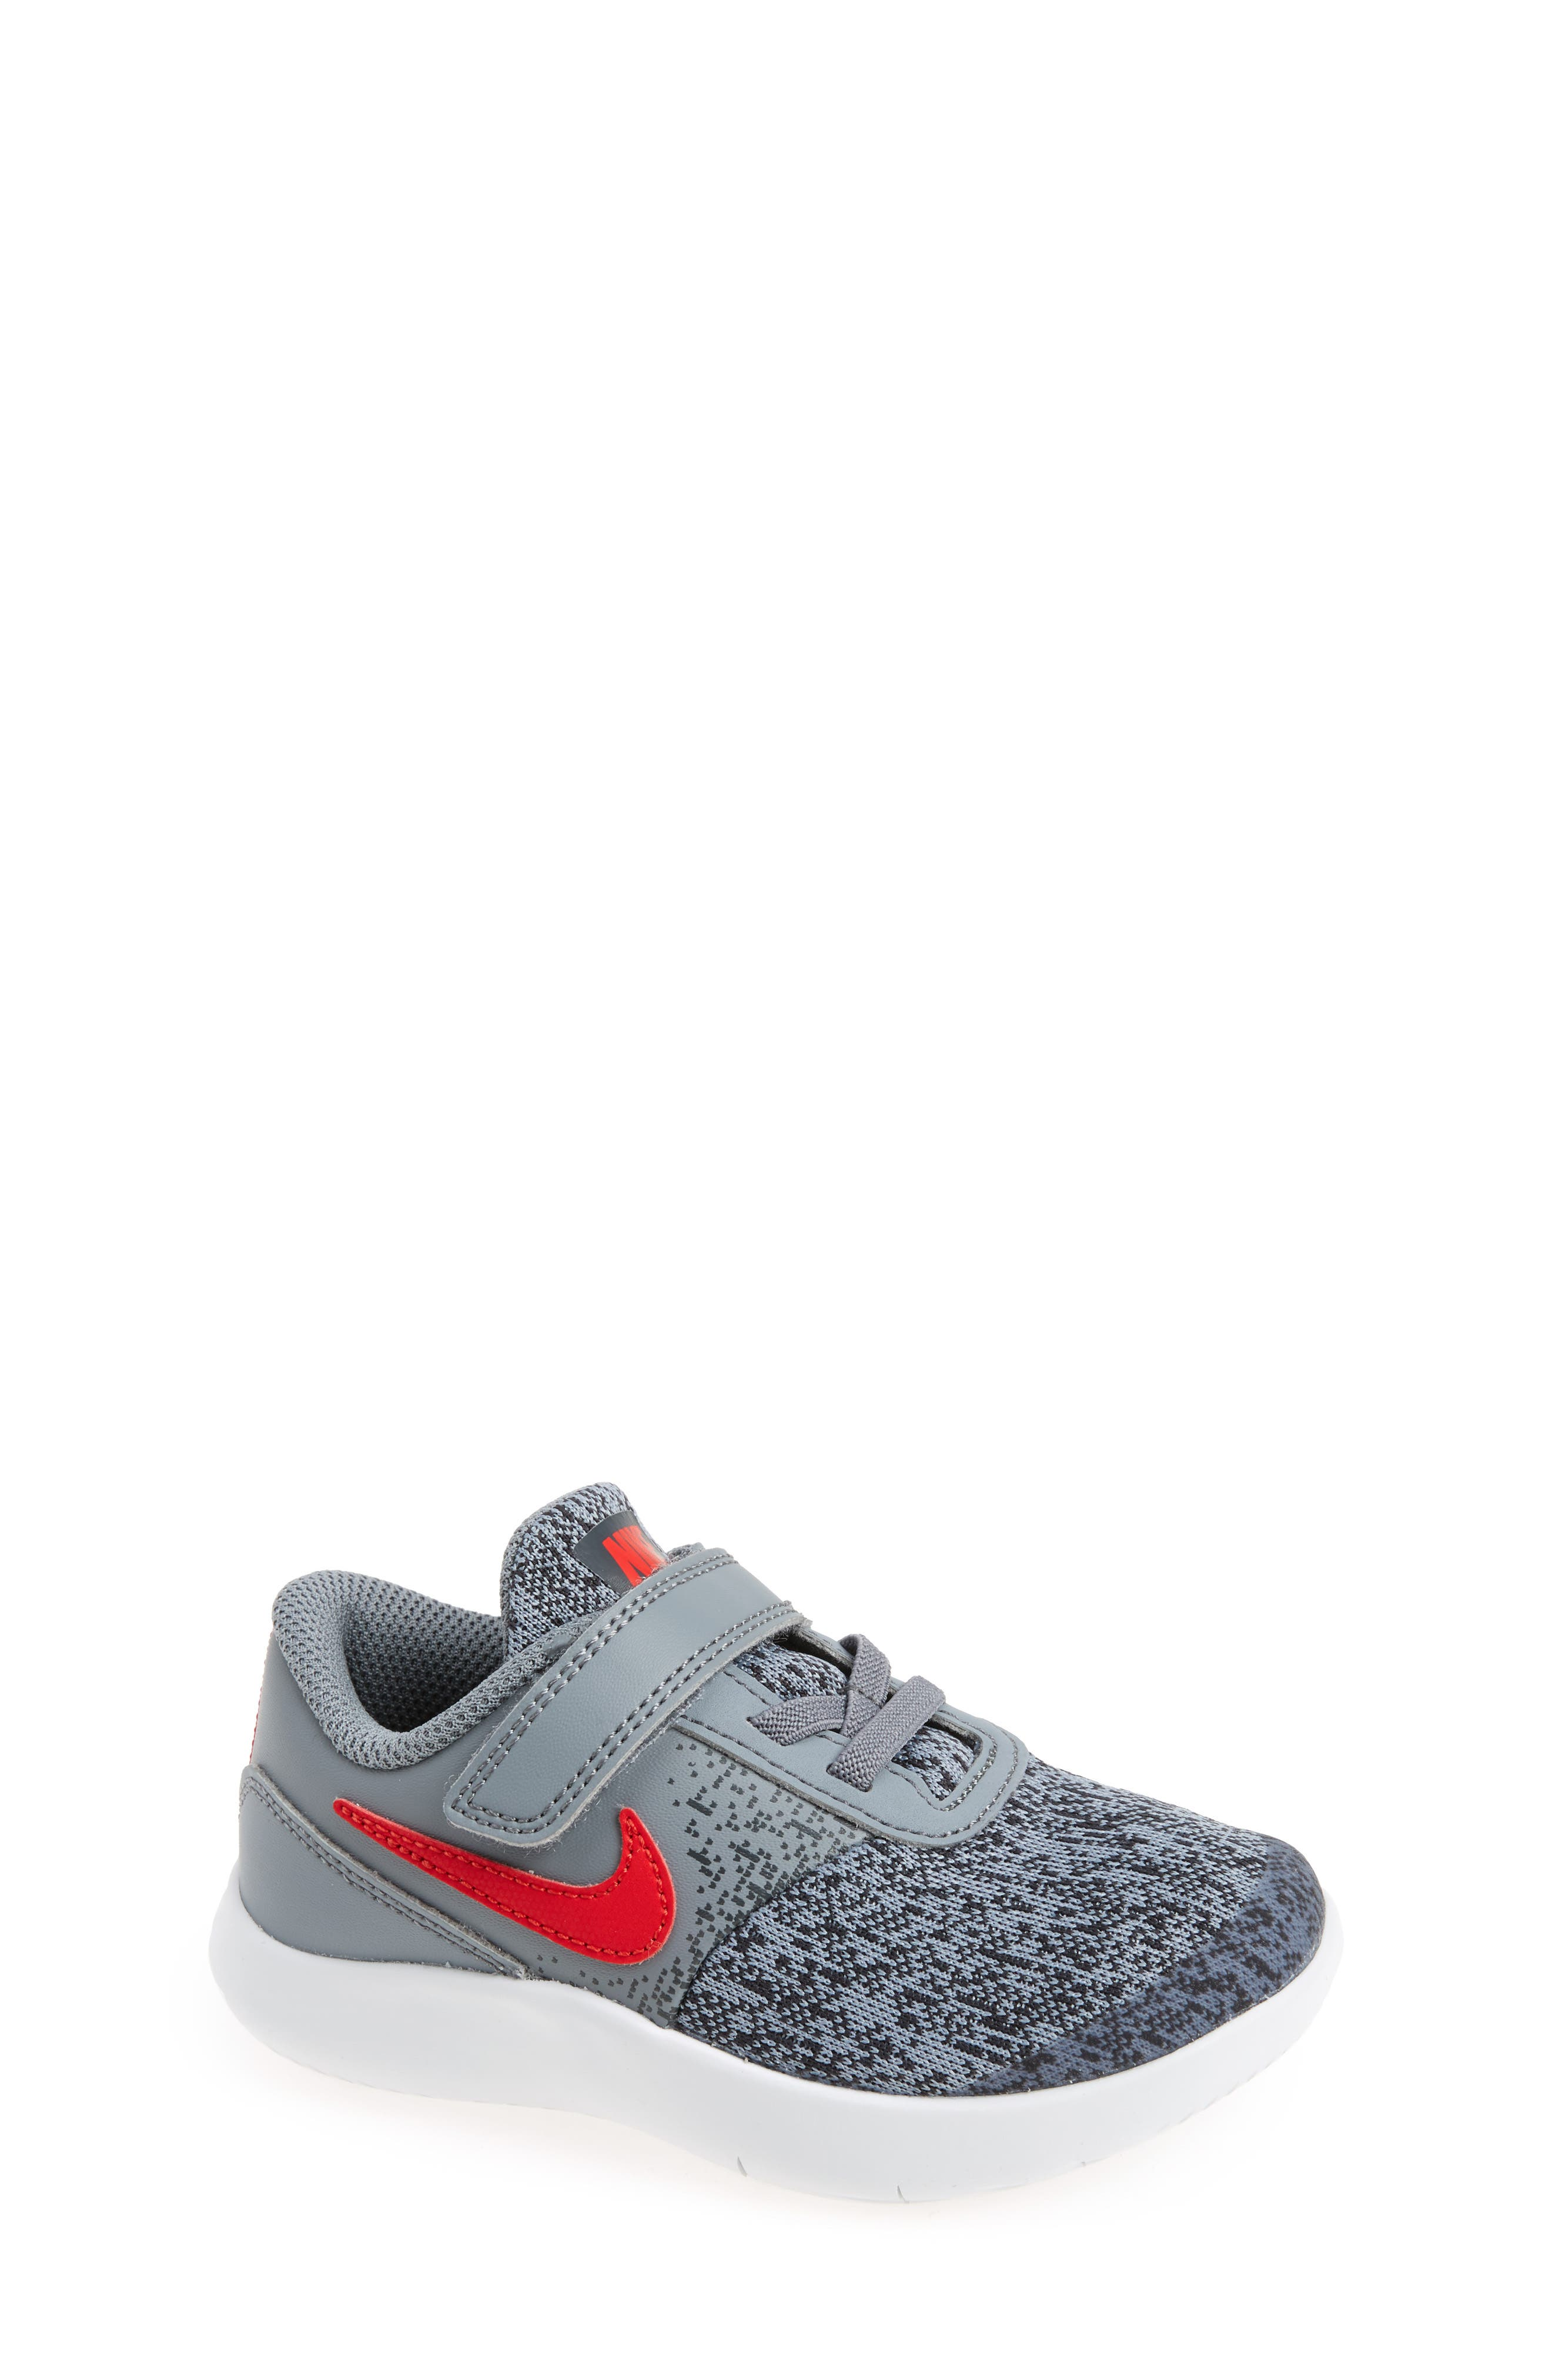 Flex Contact Sneaker,                         Main,                         color, Cool Grey/ University Red